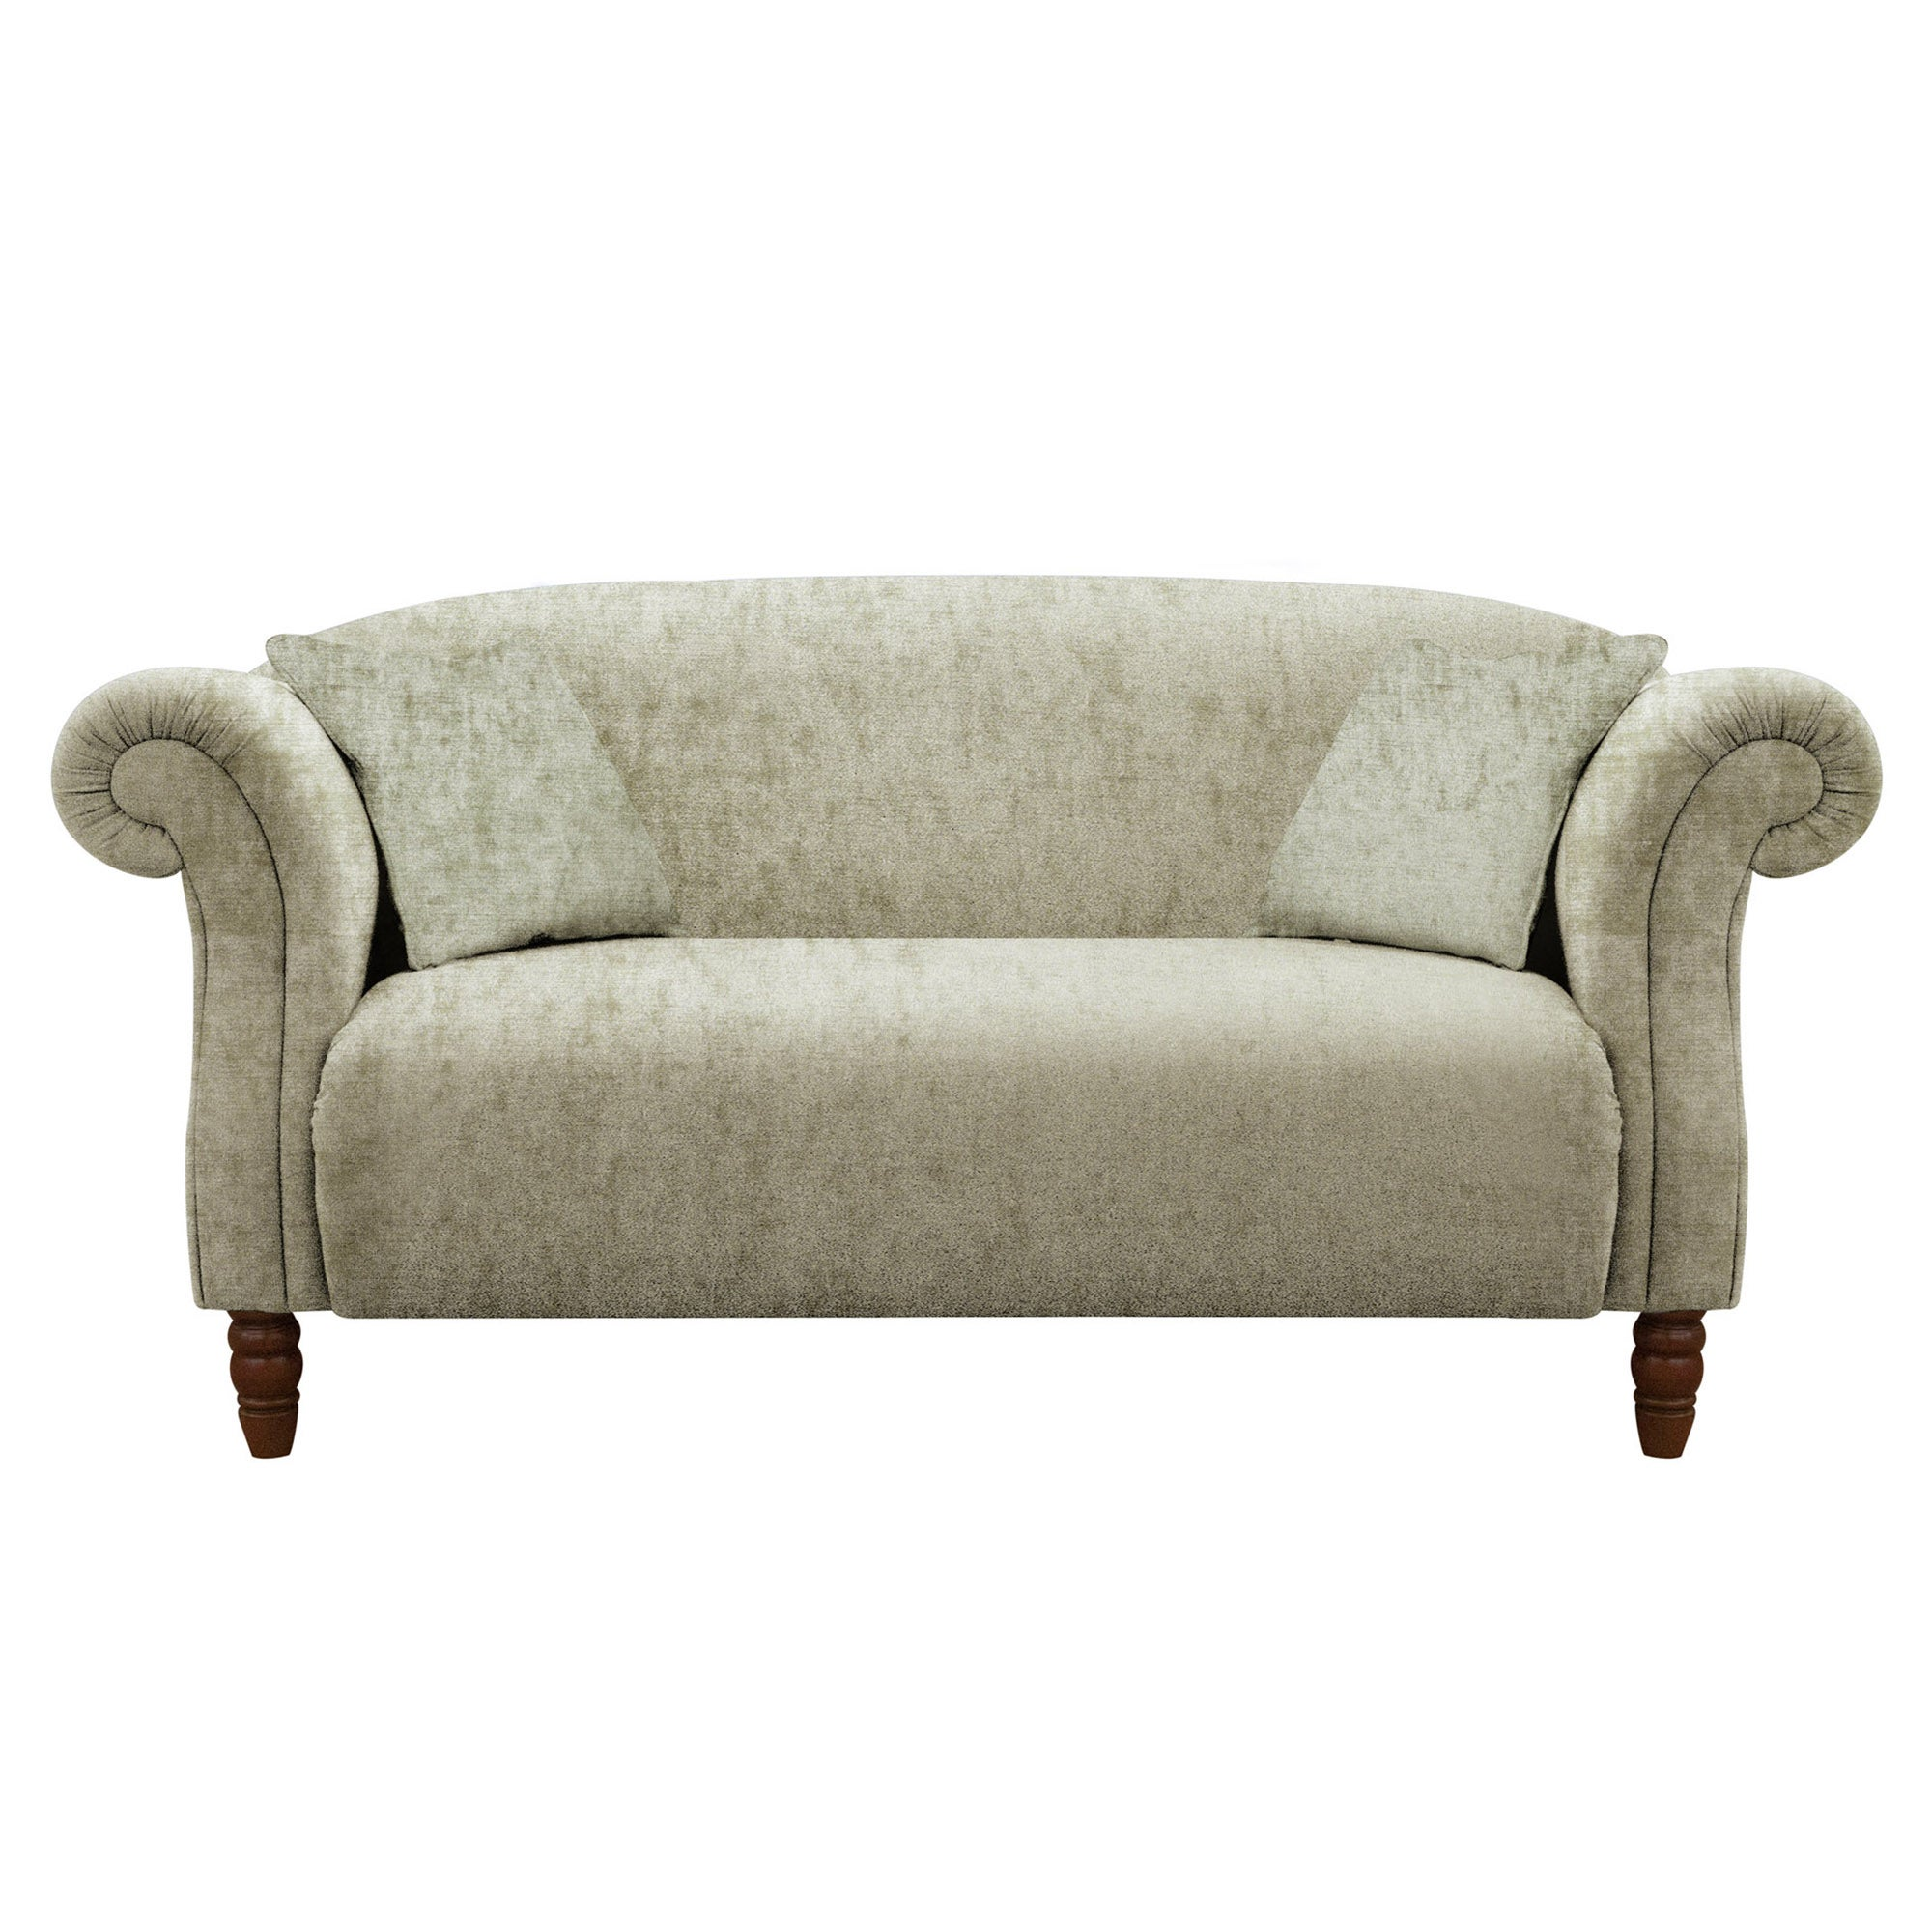 Gatsby Sofa Collection